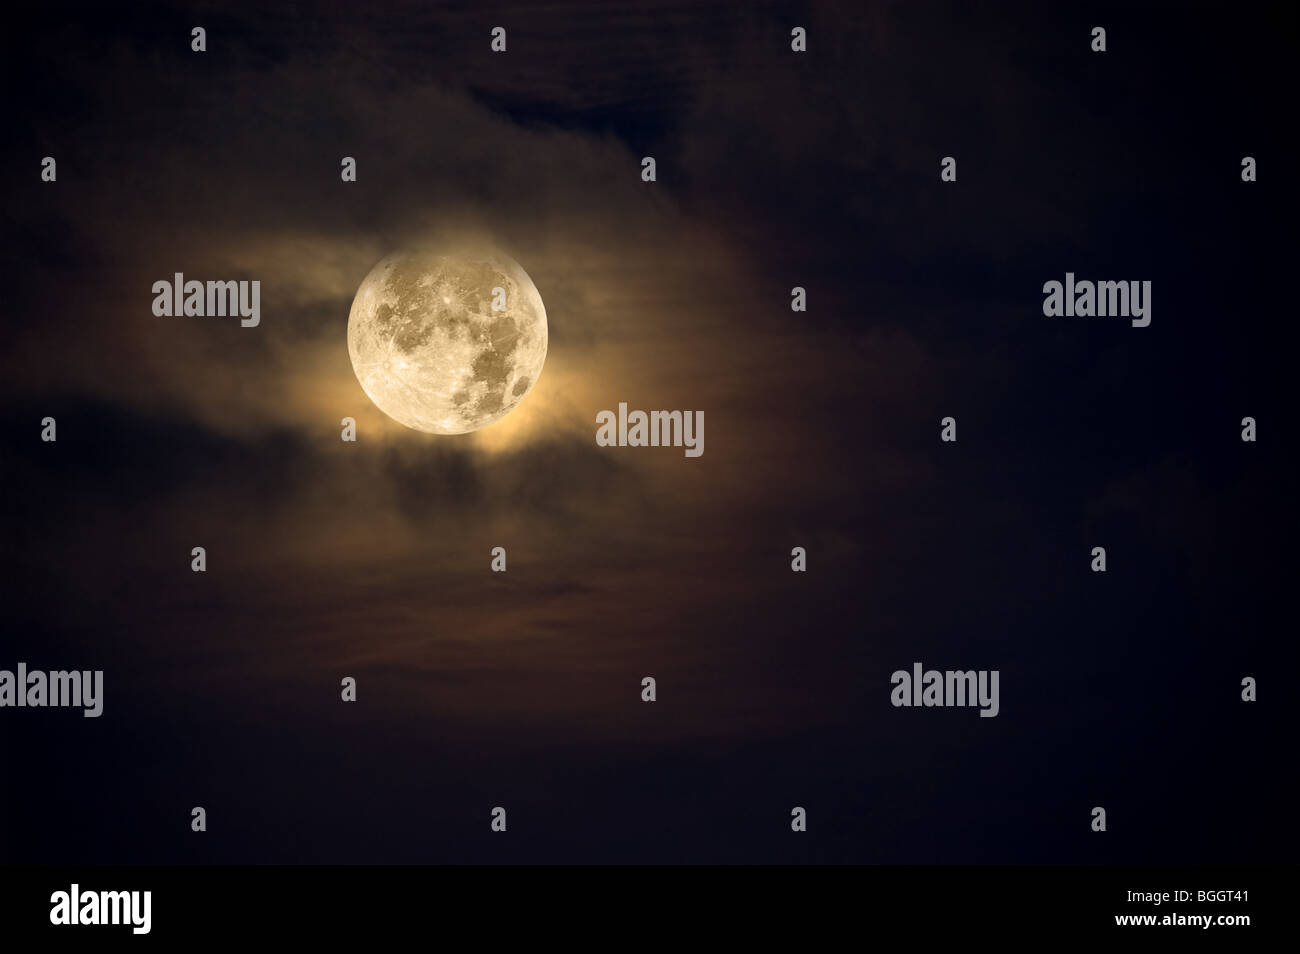 A dark night brings a bright, amber moon alive with puffy hazy clouds. - Stock Image